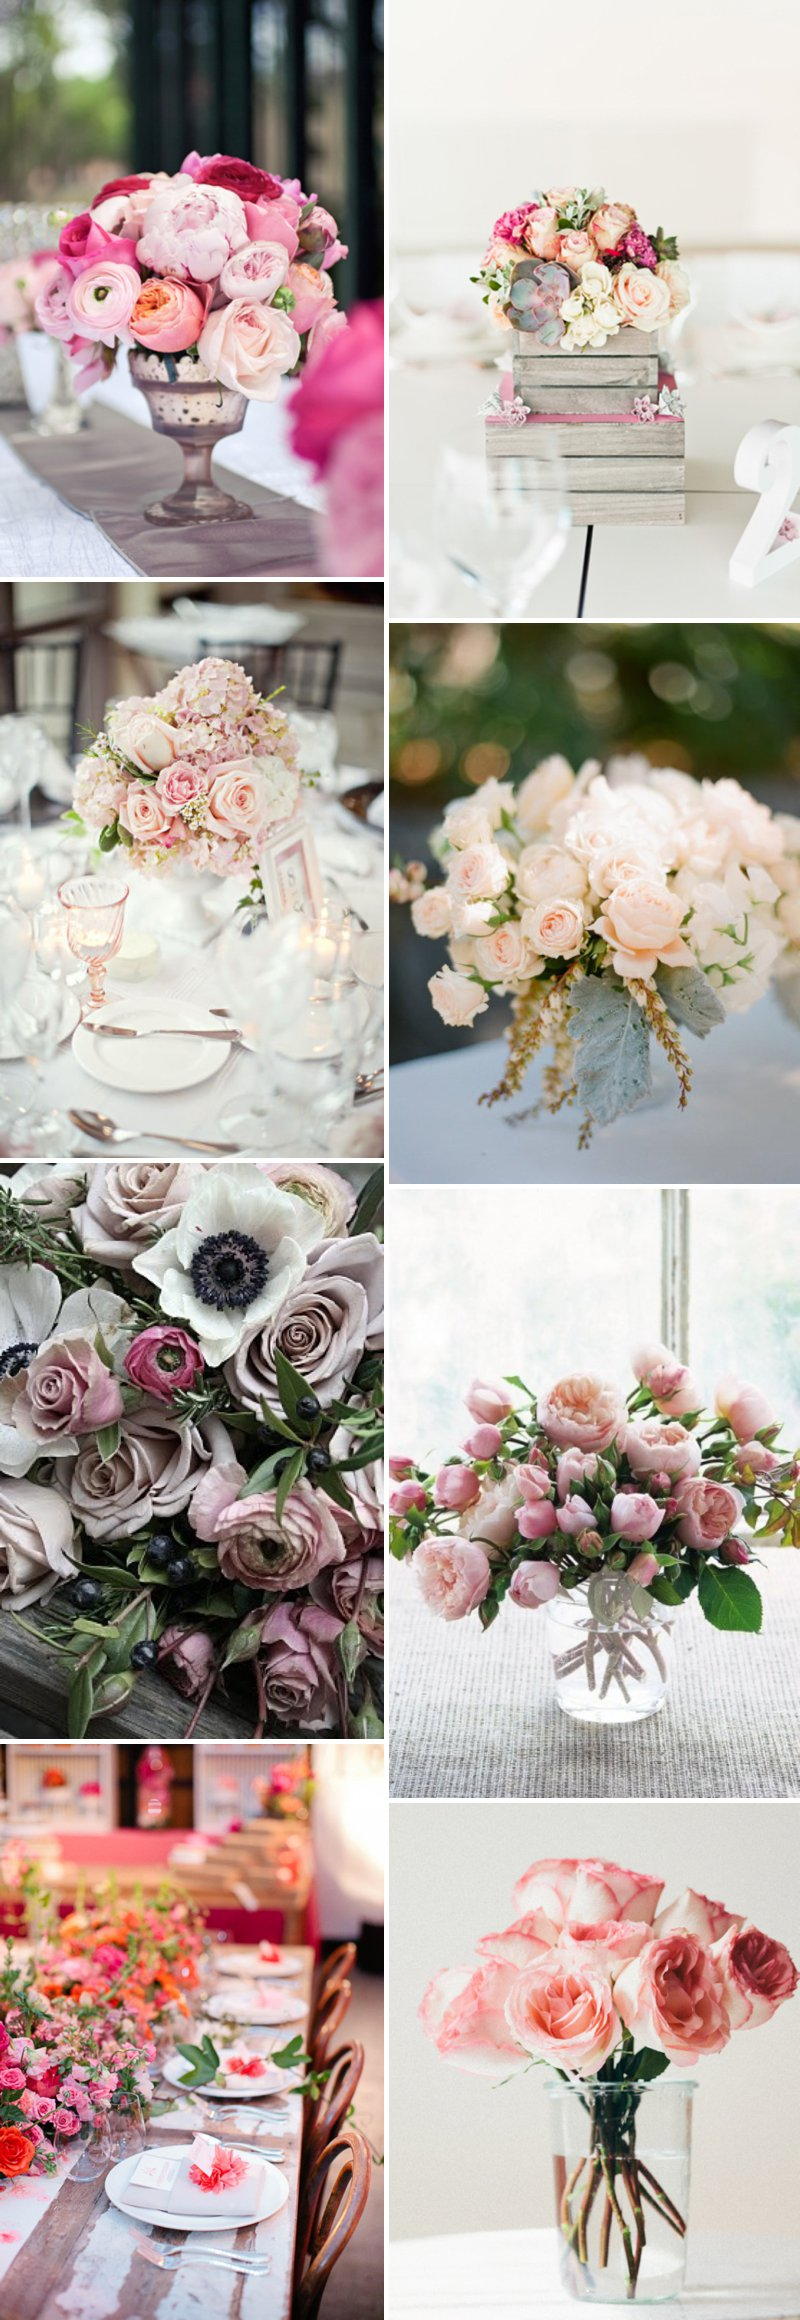 Roses Wedding Centerpieces Centrepieces Romantic